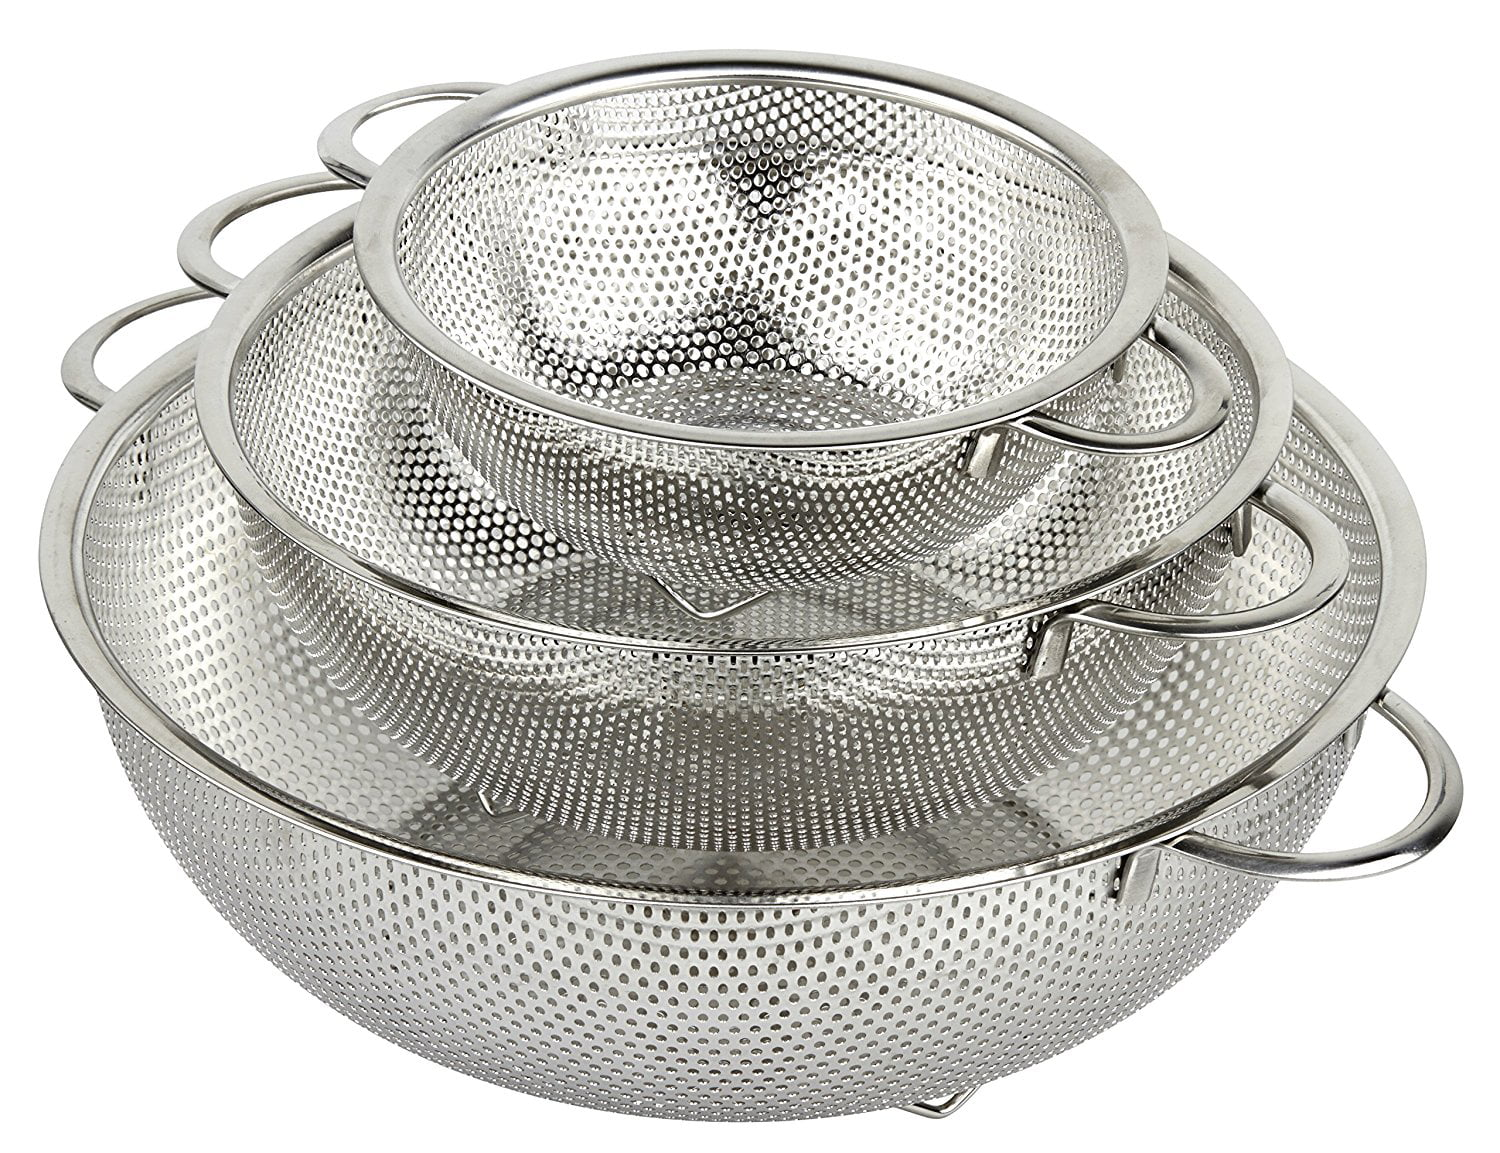 holm 3-Piece Stainless Steel Mesh Micro-Perforated Colander Set (1-Quart, 2.5-Quart and 4.5-Quart) by